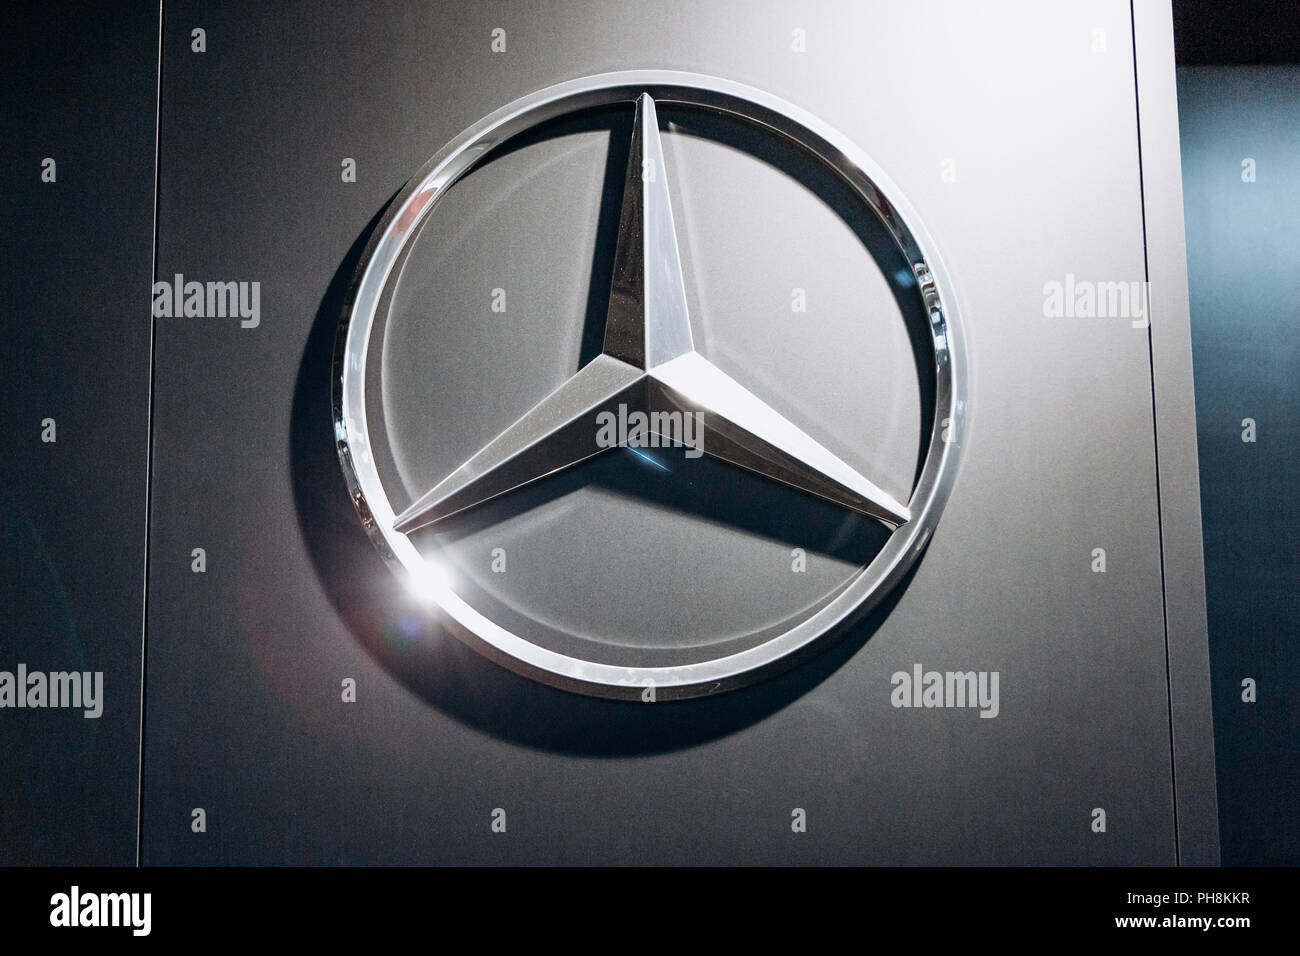 World sites of car manufacturing companies: a selection of sites